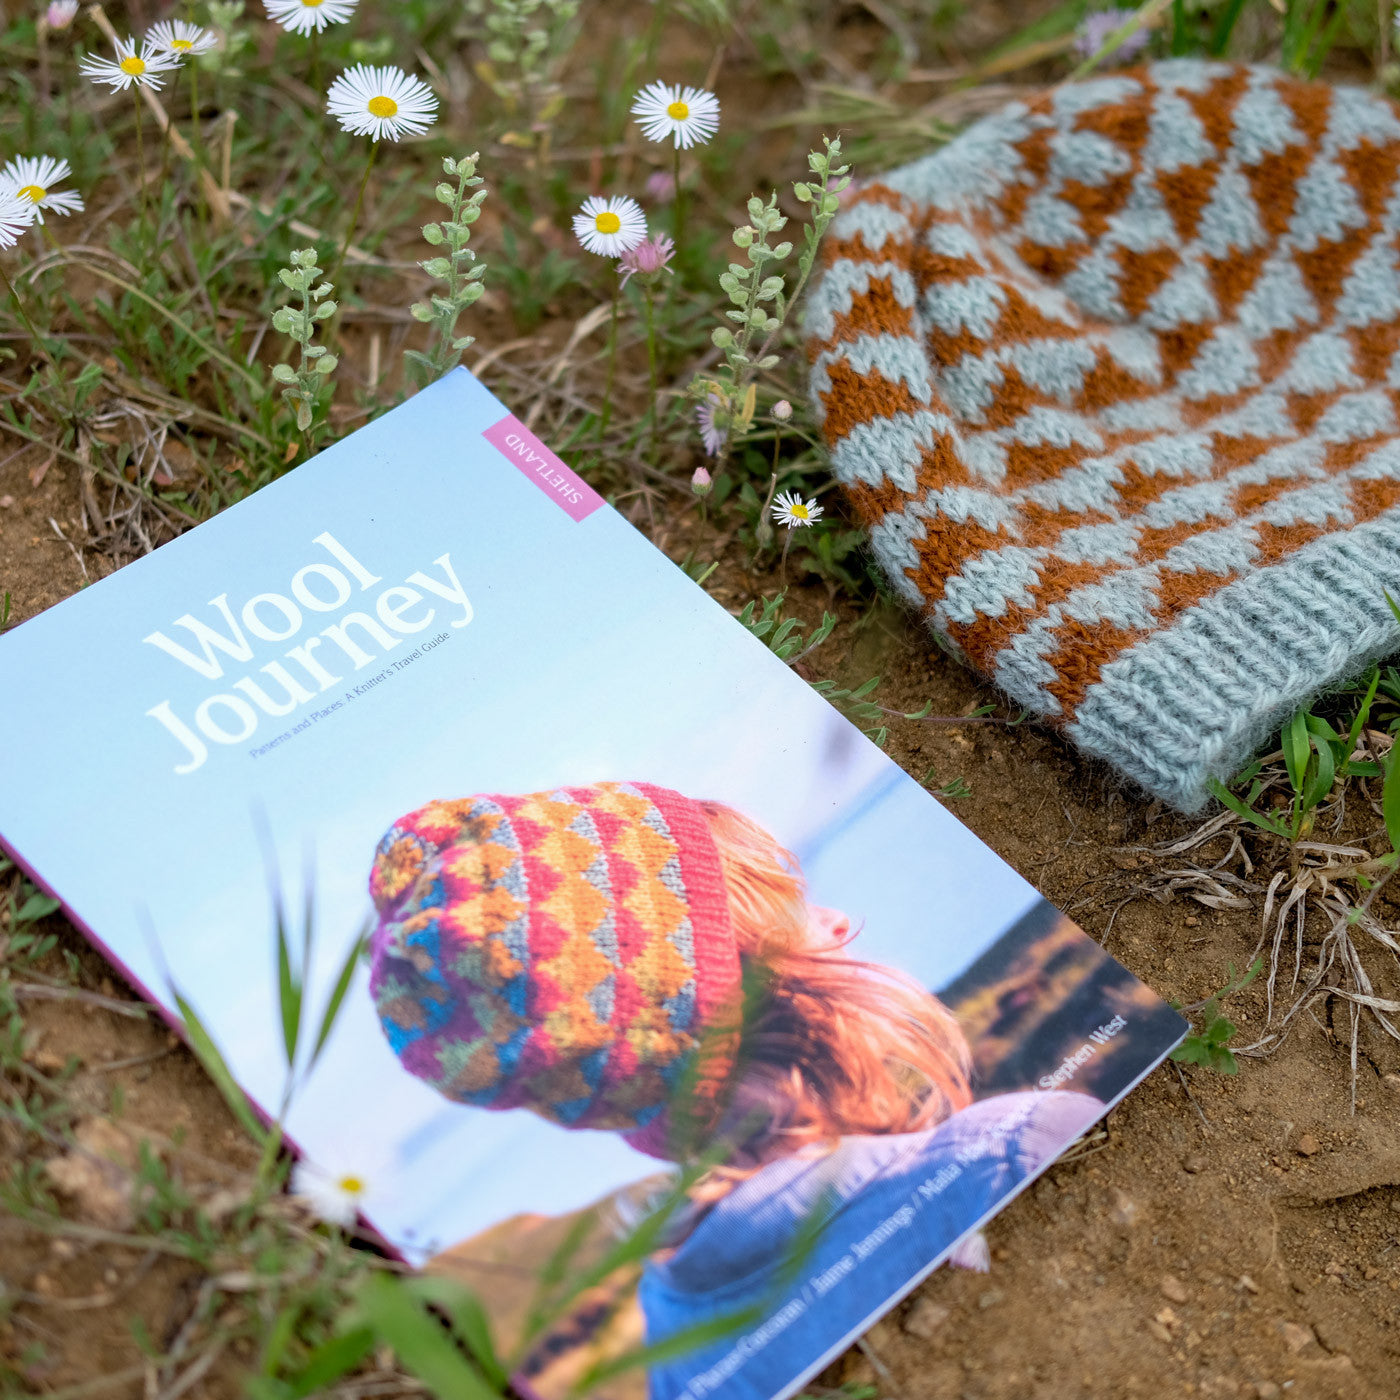 Wool Journey: Shetland book